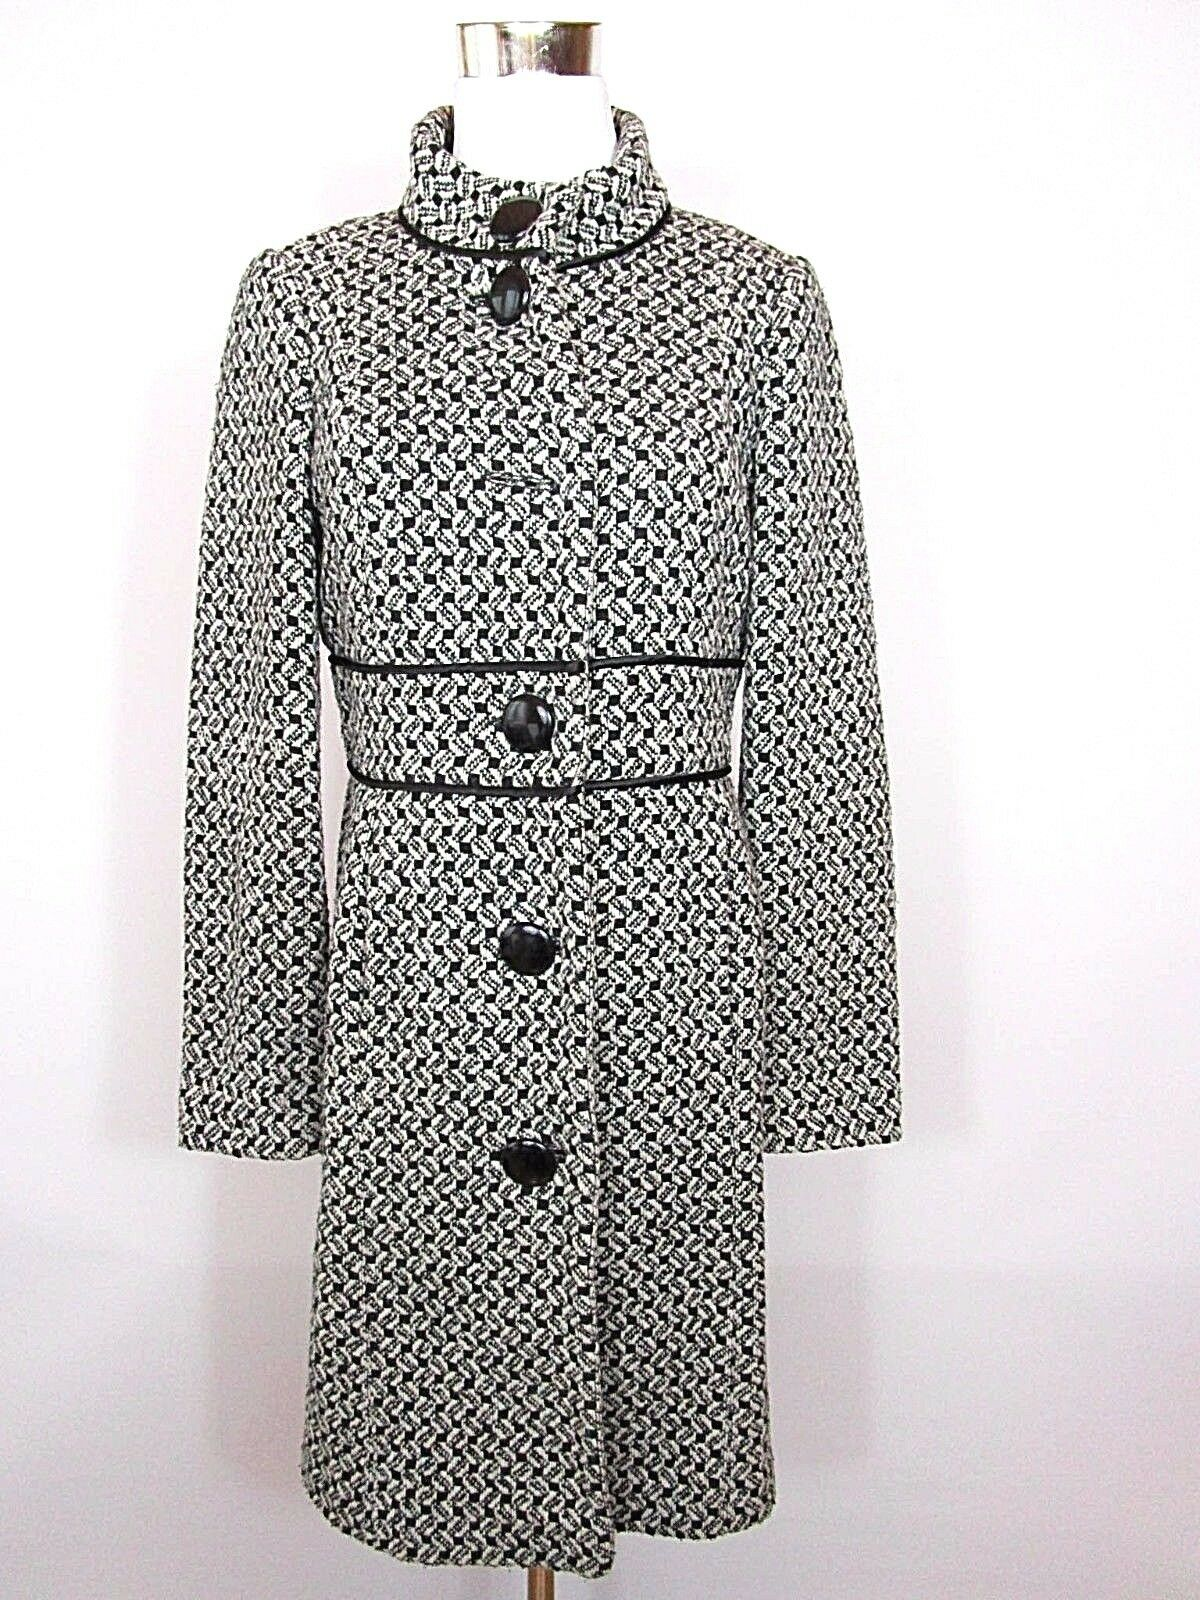 PRINCIPLES WOMENS CASUAL FASHION PRINT WOOL WARM AUTUMN WINTER COAT sz 10 S BA85